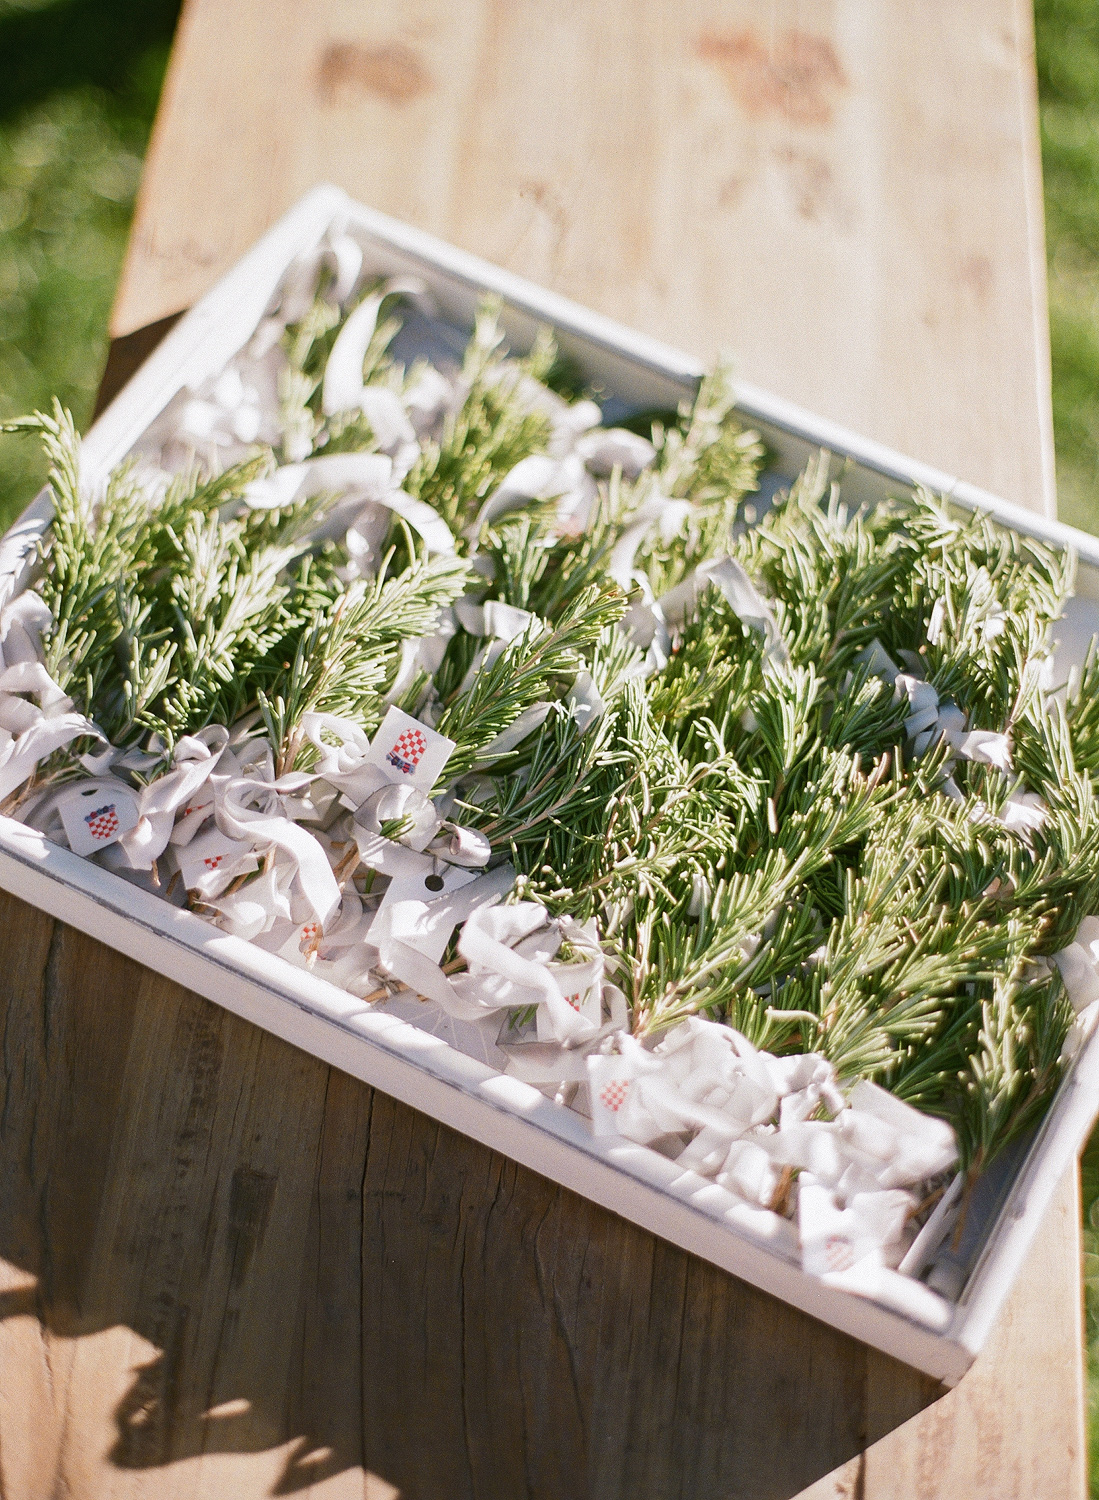 Natalie and Grant wedding Croatian rosemary bunches for lapels